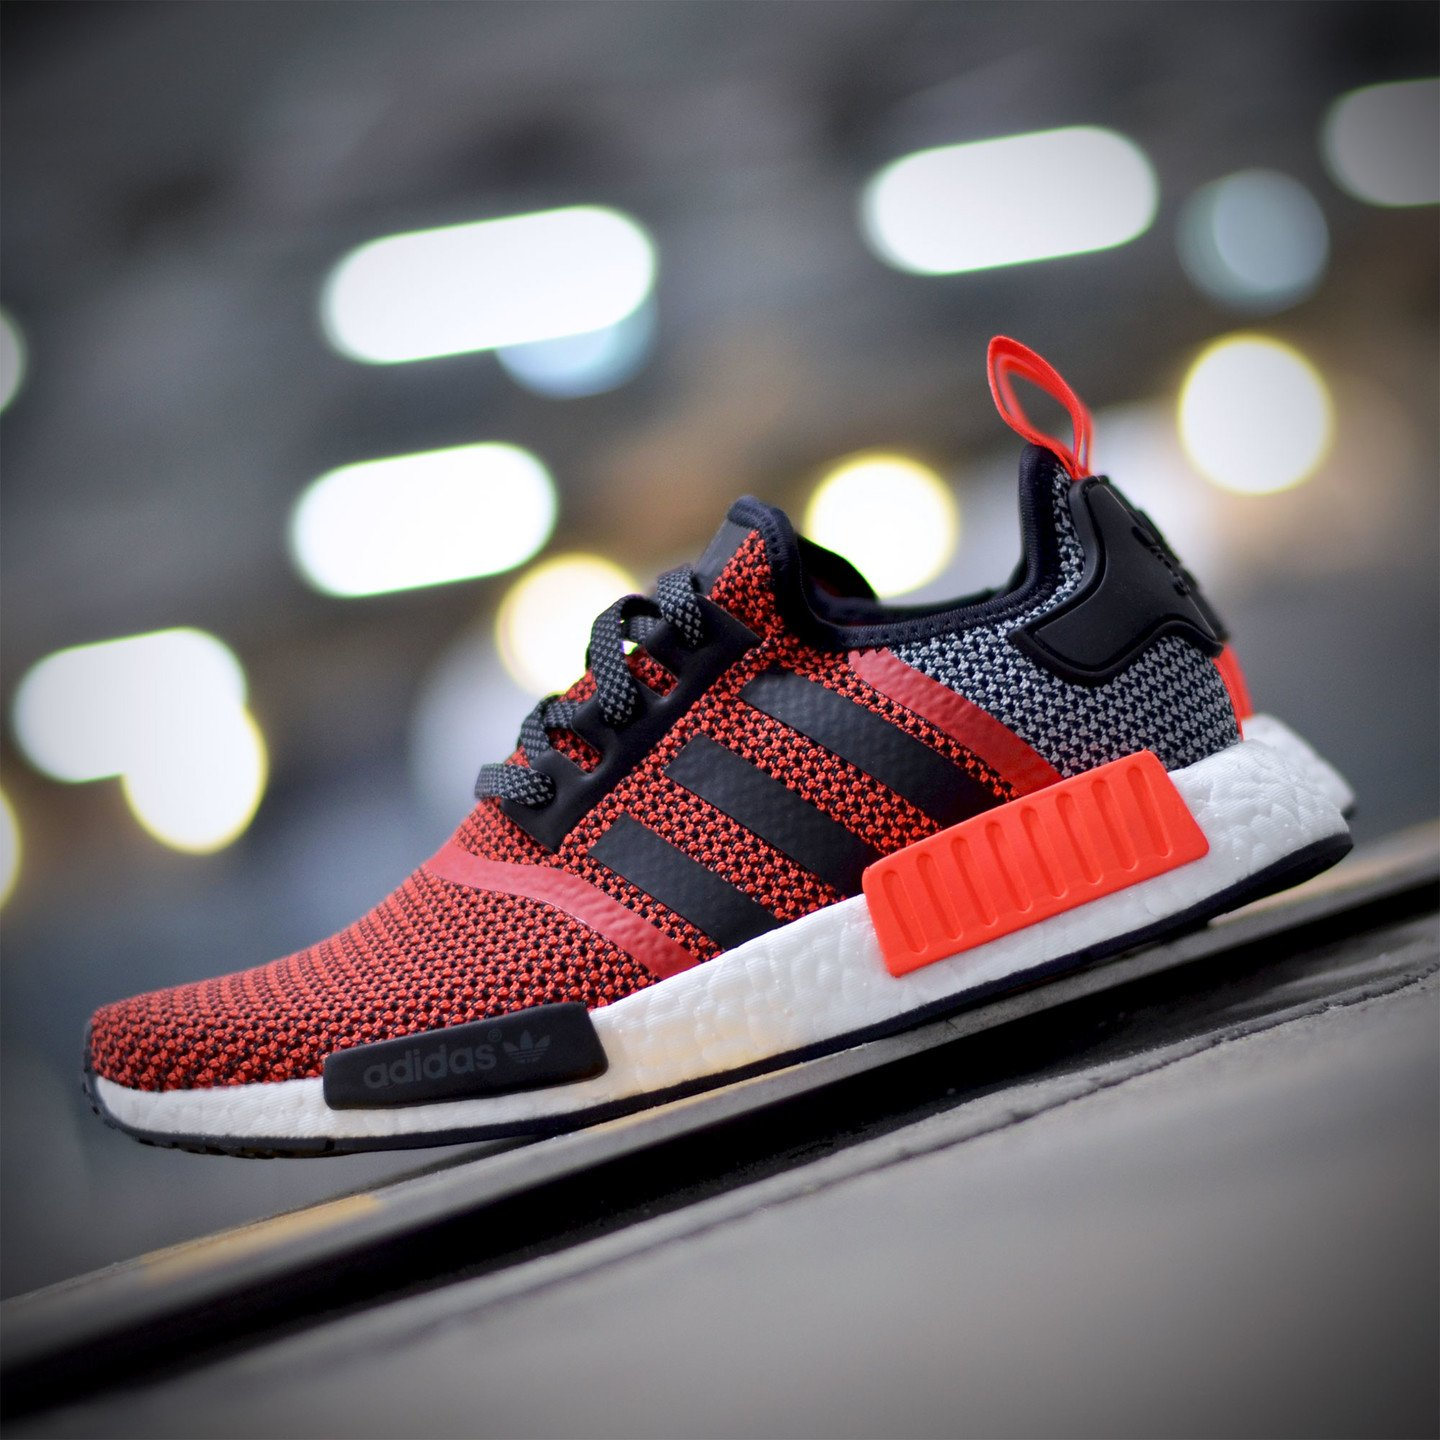 Adidas NMD R1 Runner Lush Red / Core Black S79158-42